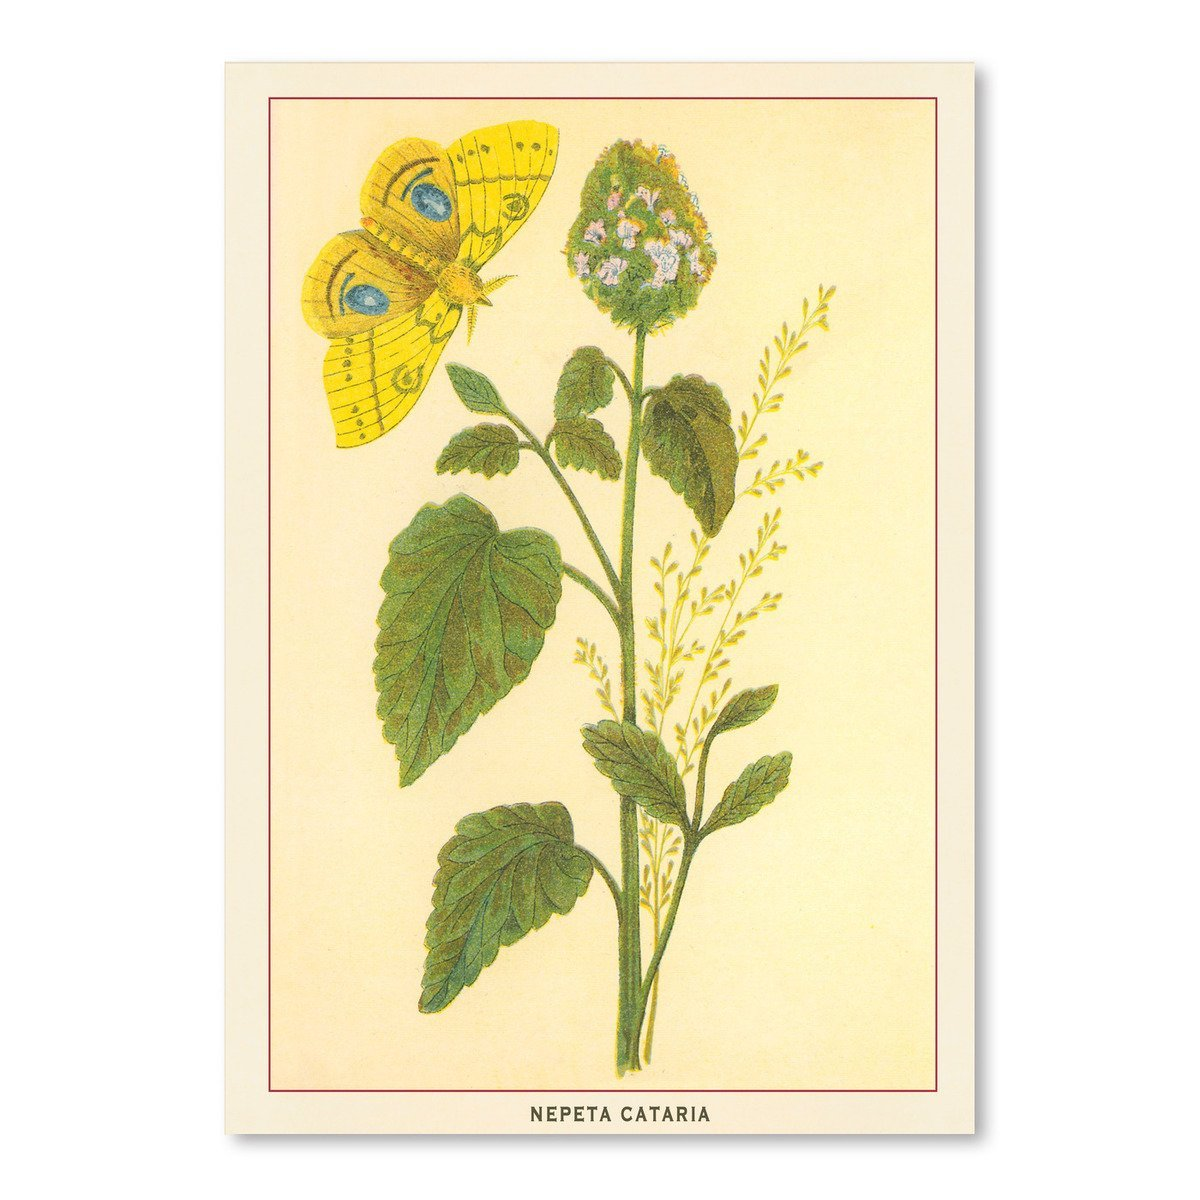 Catnip And Butterfly by Found Image Press Art Print - Art Print - Americanflat